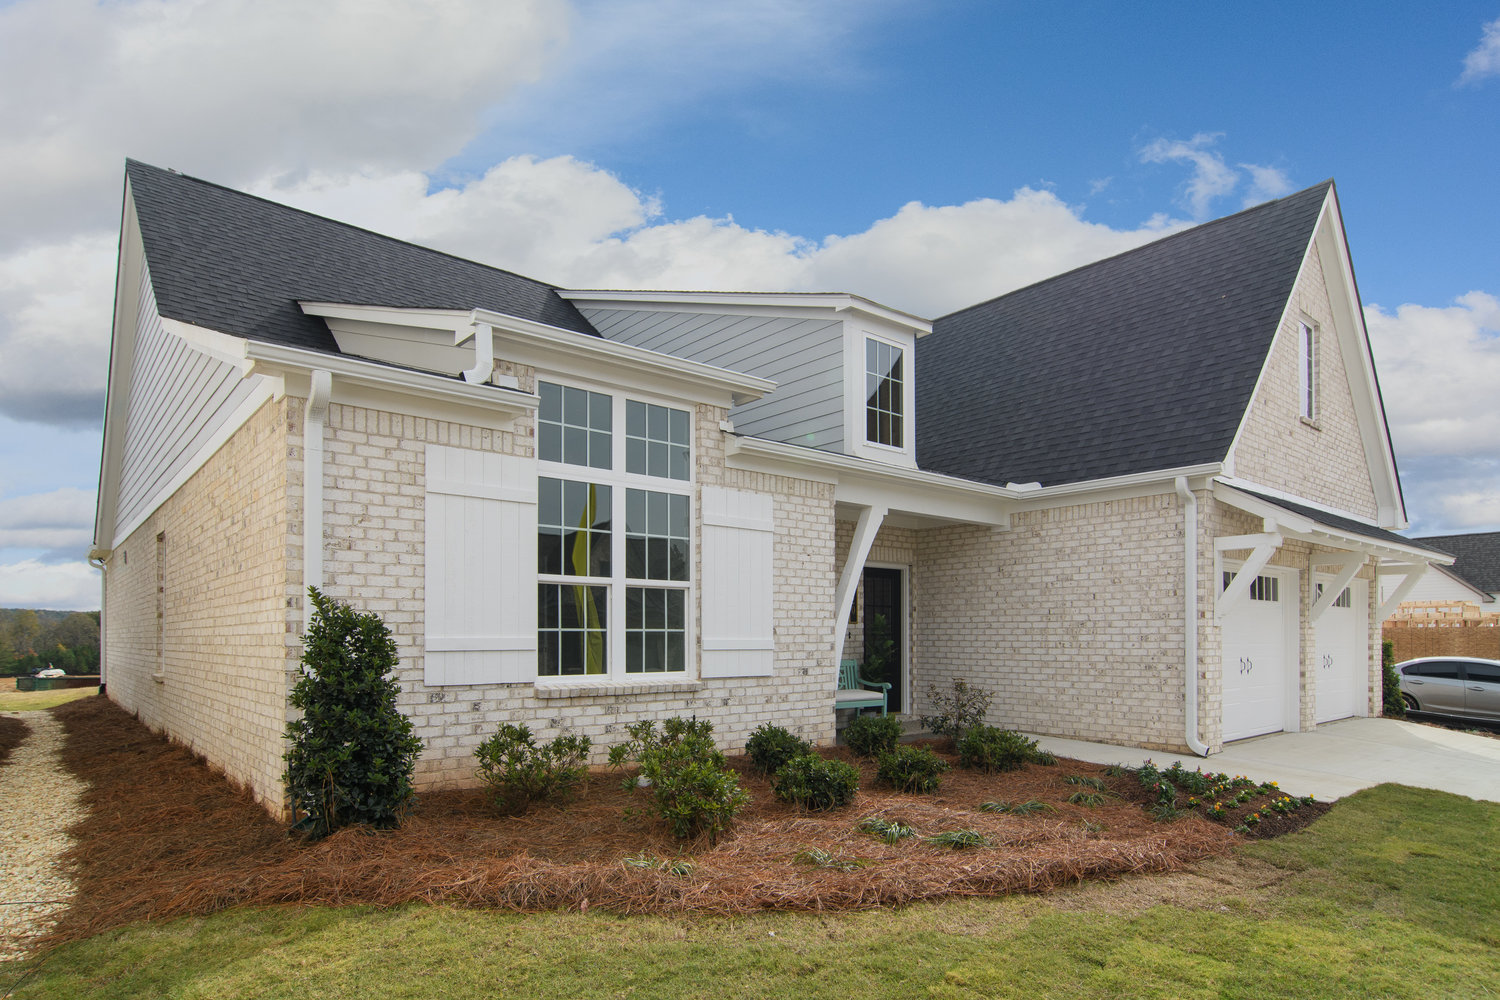 Virtual Tour of Birmingham Metro Real Estate Listing For Sale | 3220 Trip Run, Hoover, AL 35244